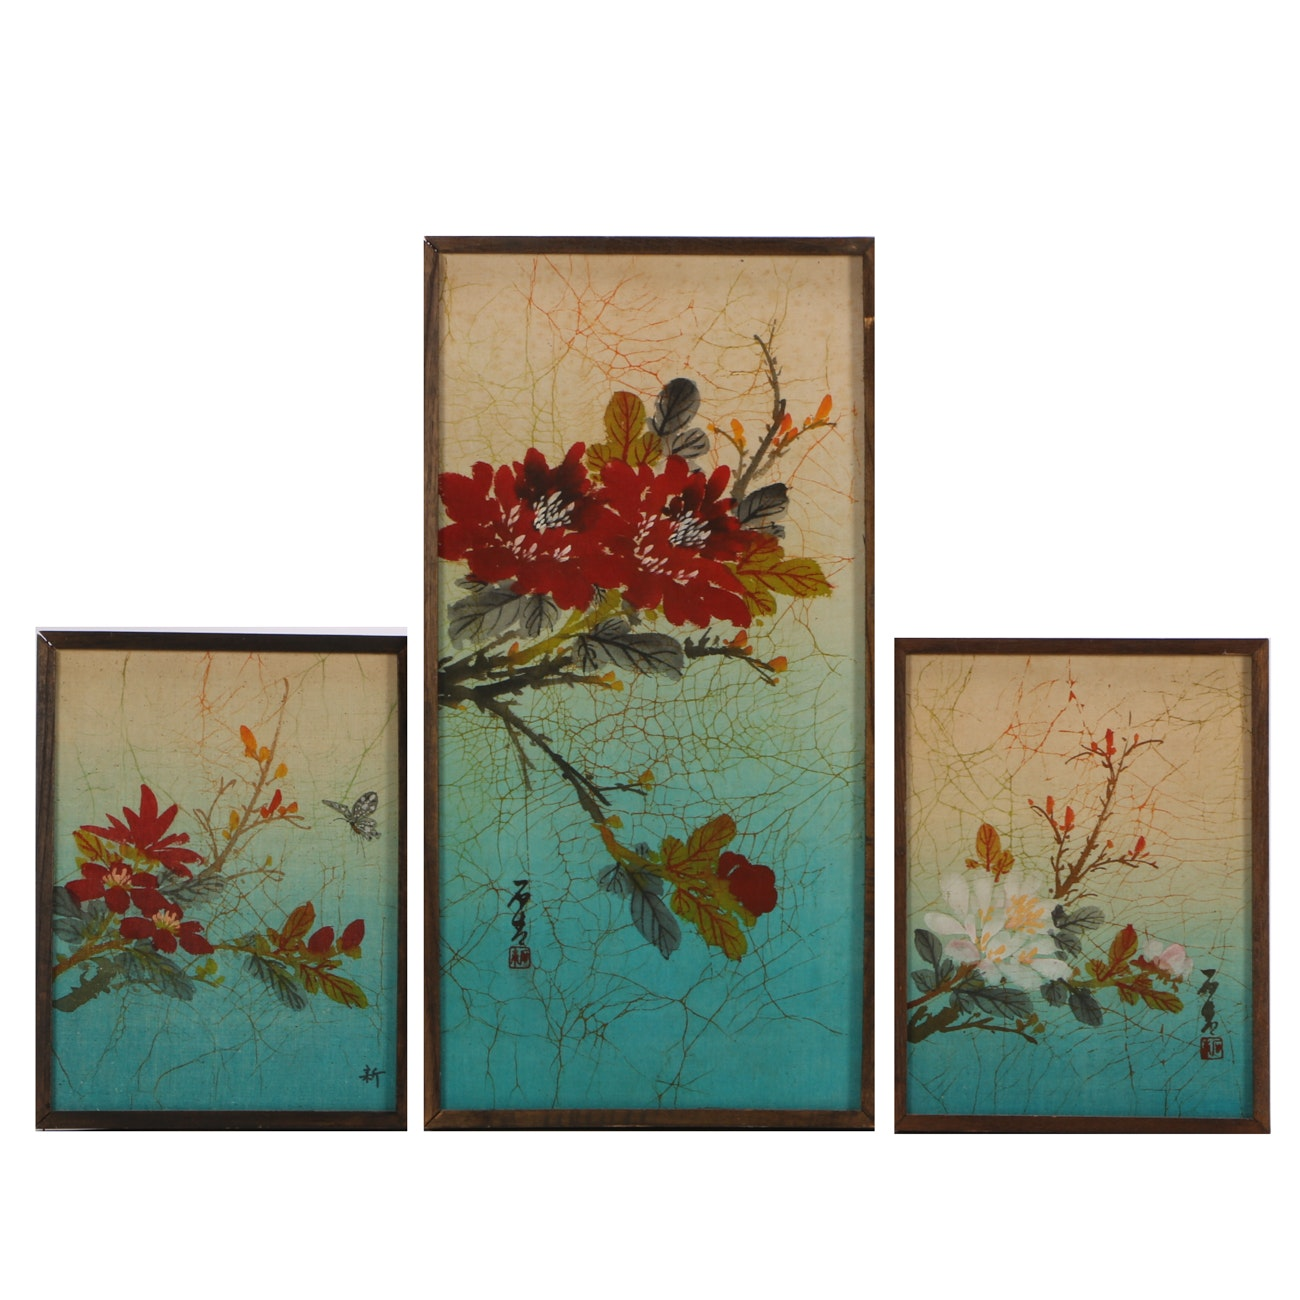 Chinese Hand-painted Motifs on Batik Fabric Triptych